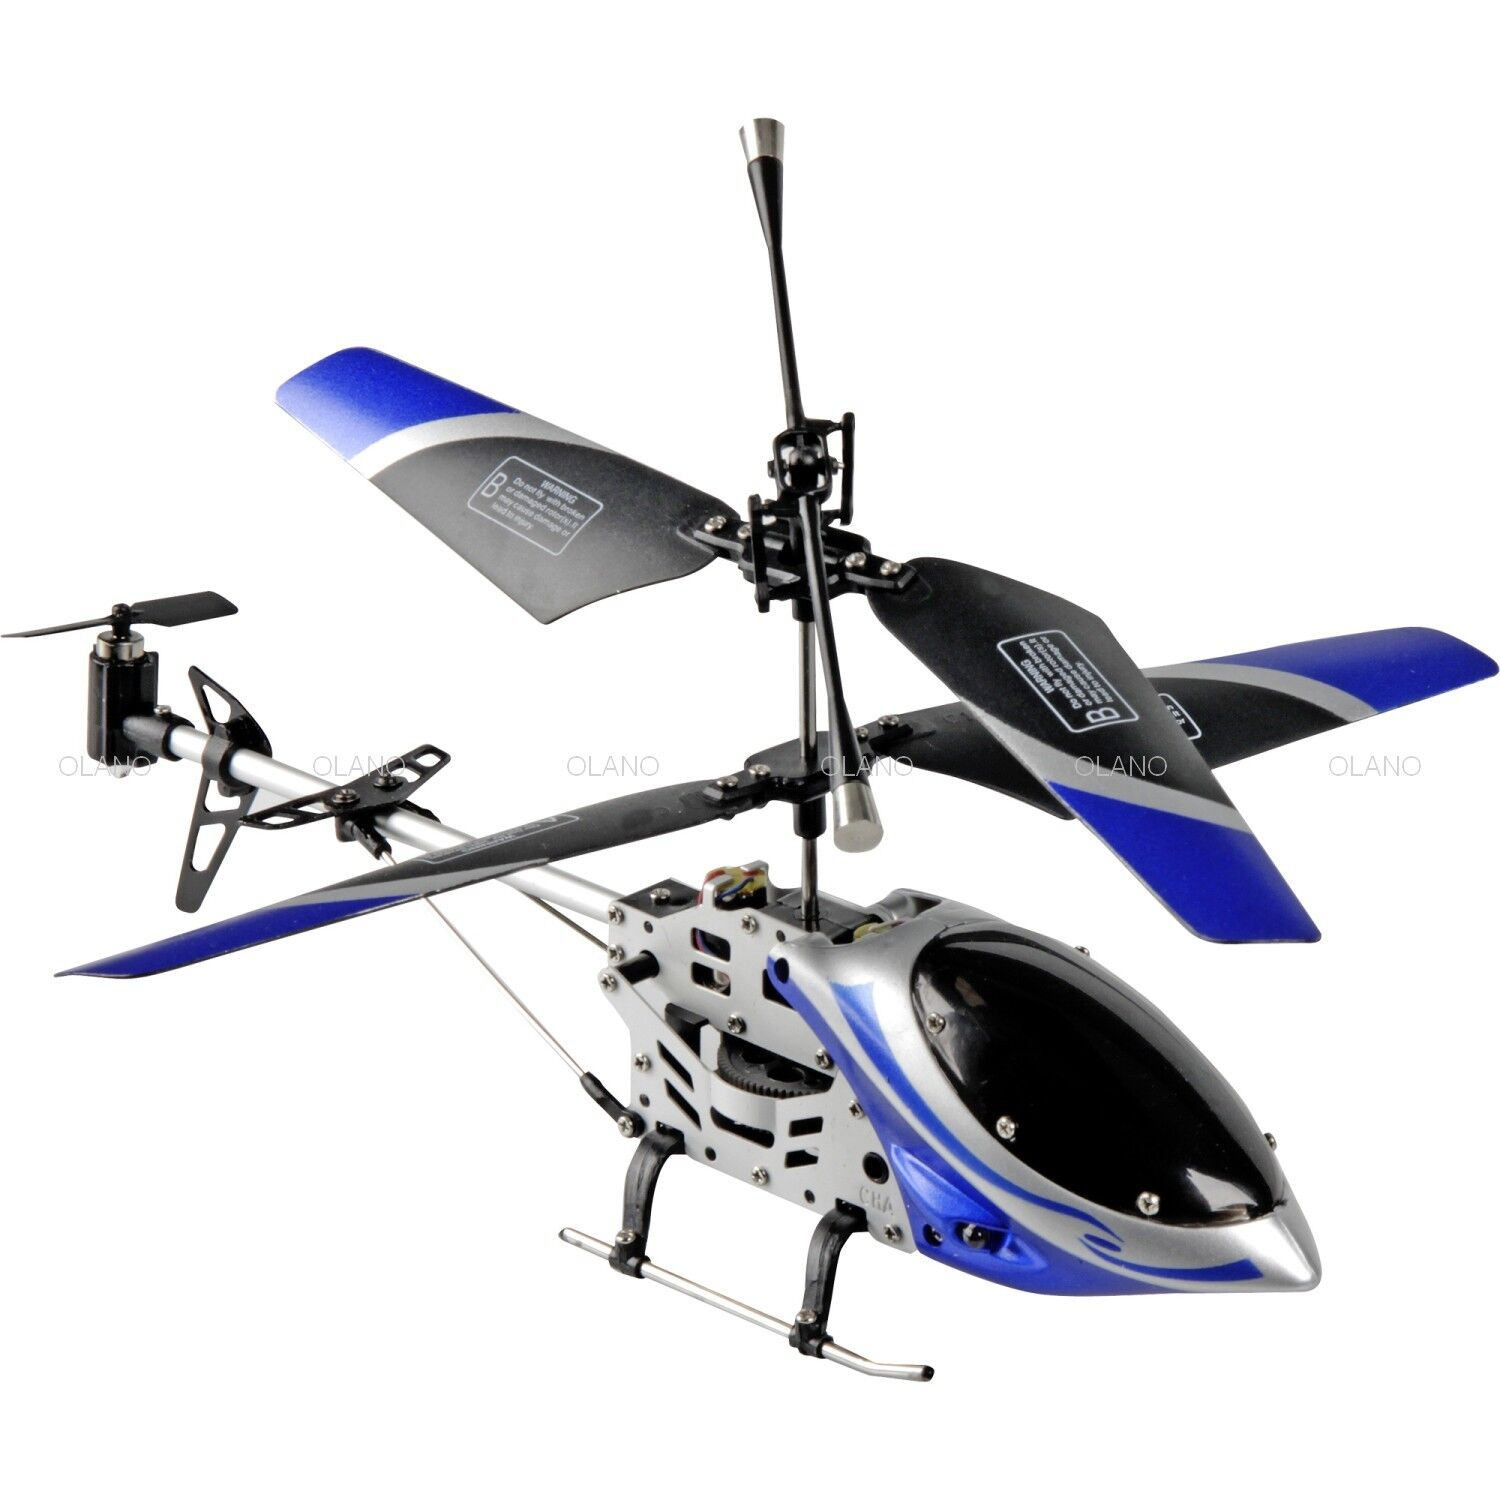 Fun2Get i Helicopter: IR Mini Helikopter nur 14,99€